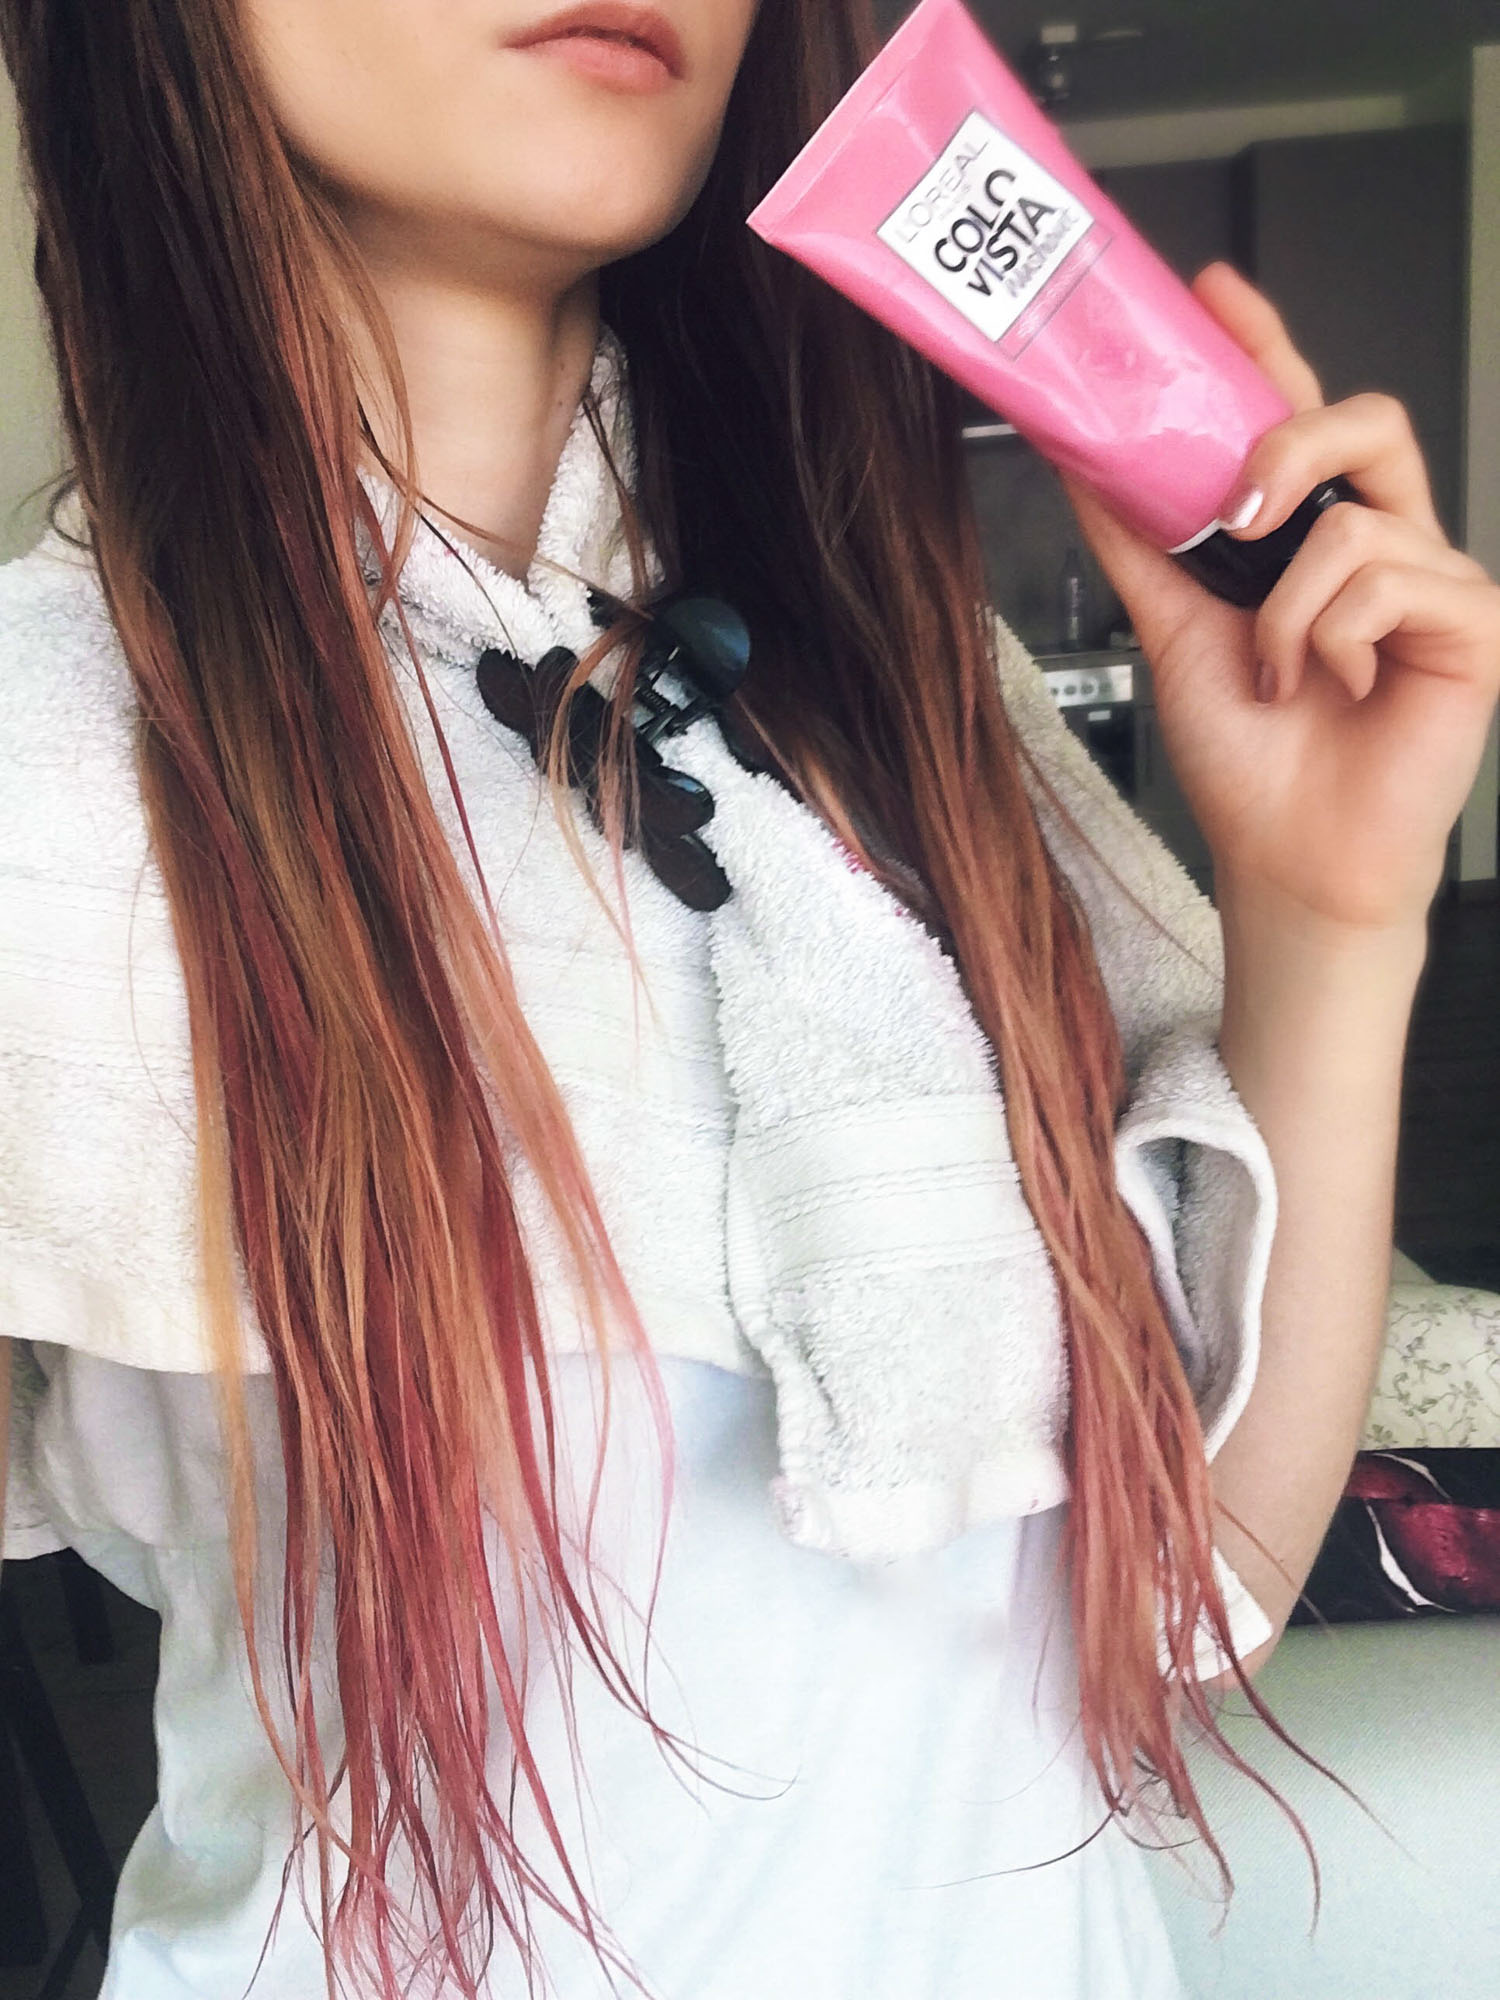 L'Oreal Colorista Washout Dirty Pink hair dye during colouring Cydonia